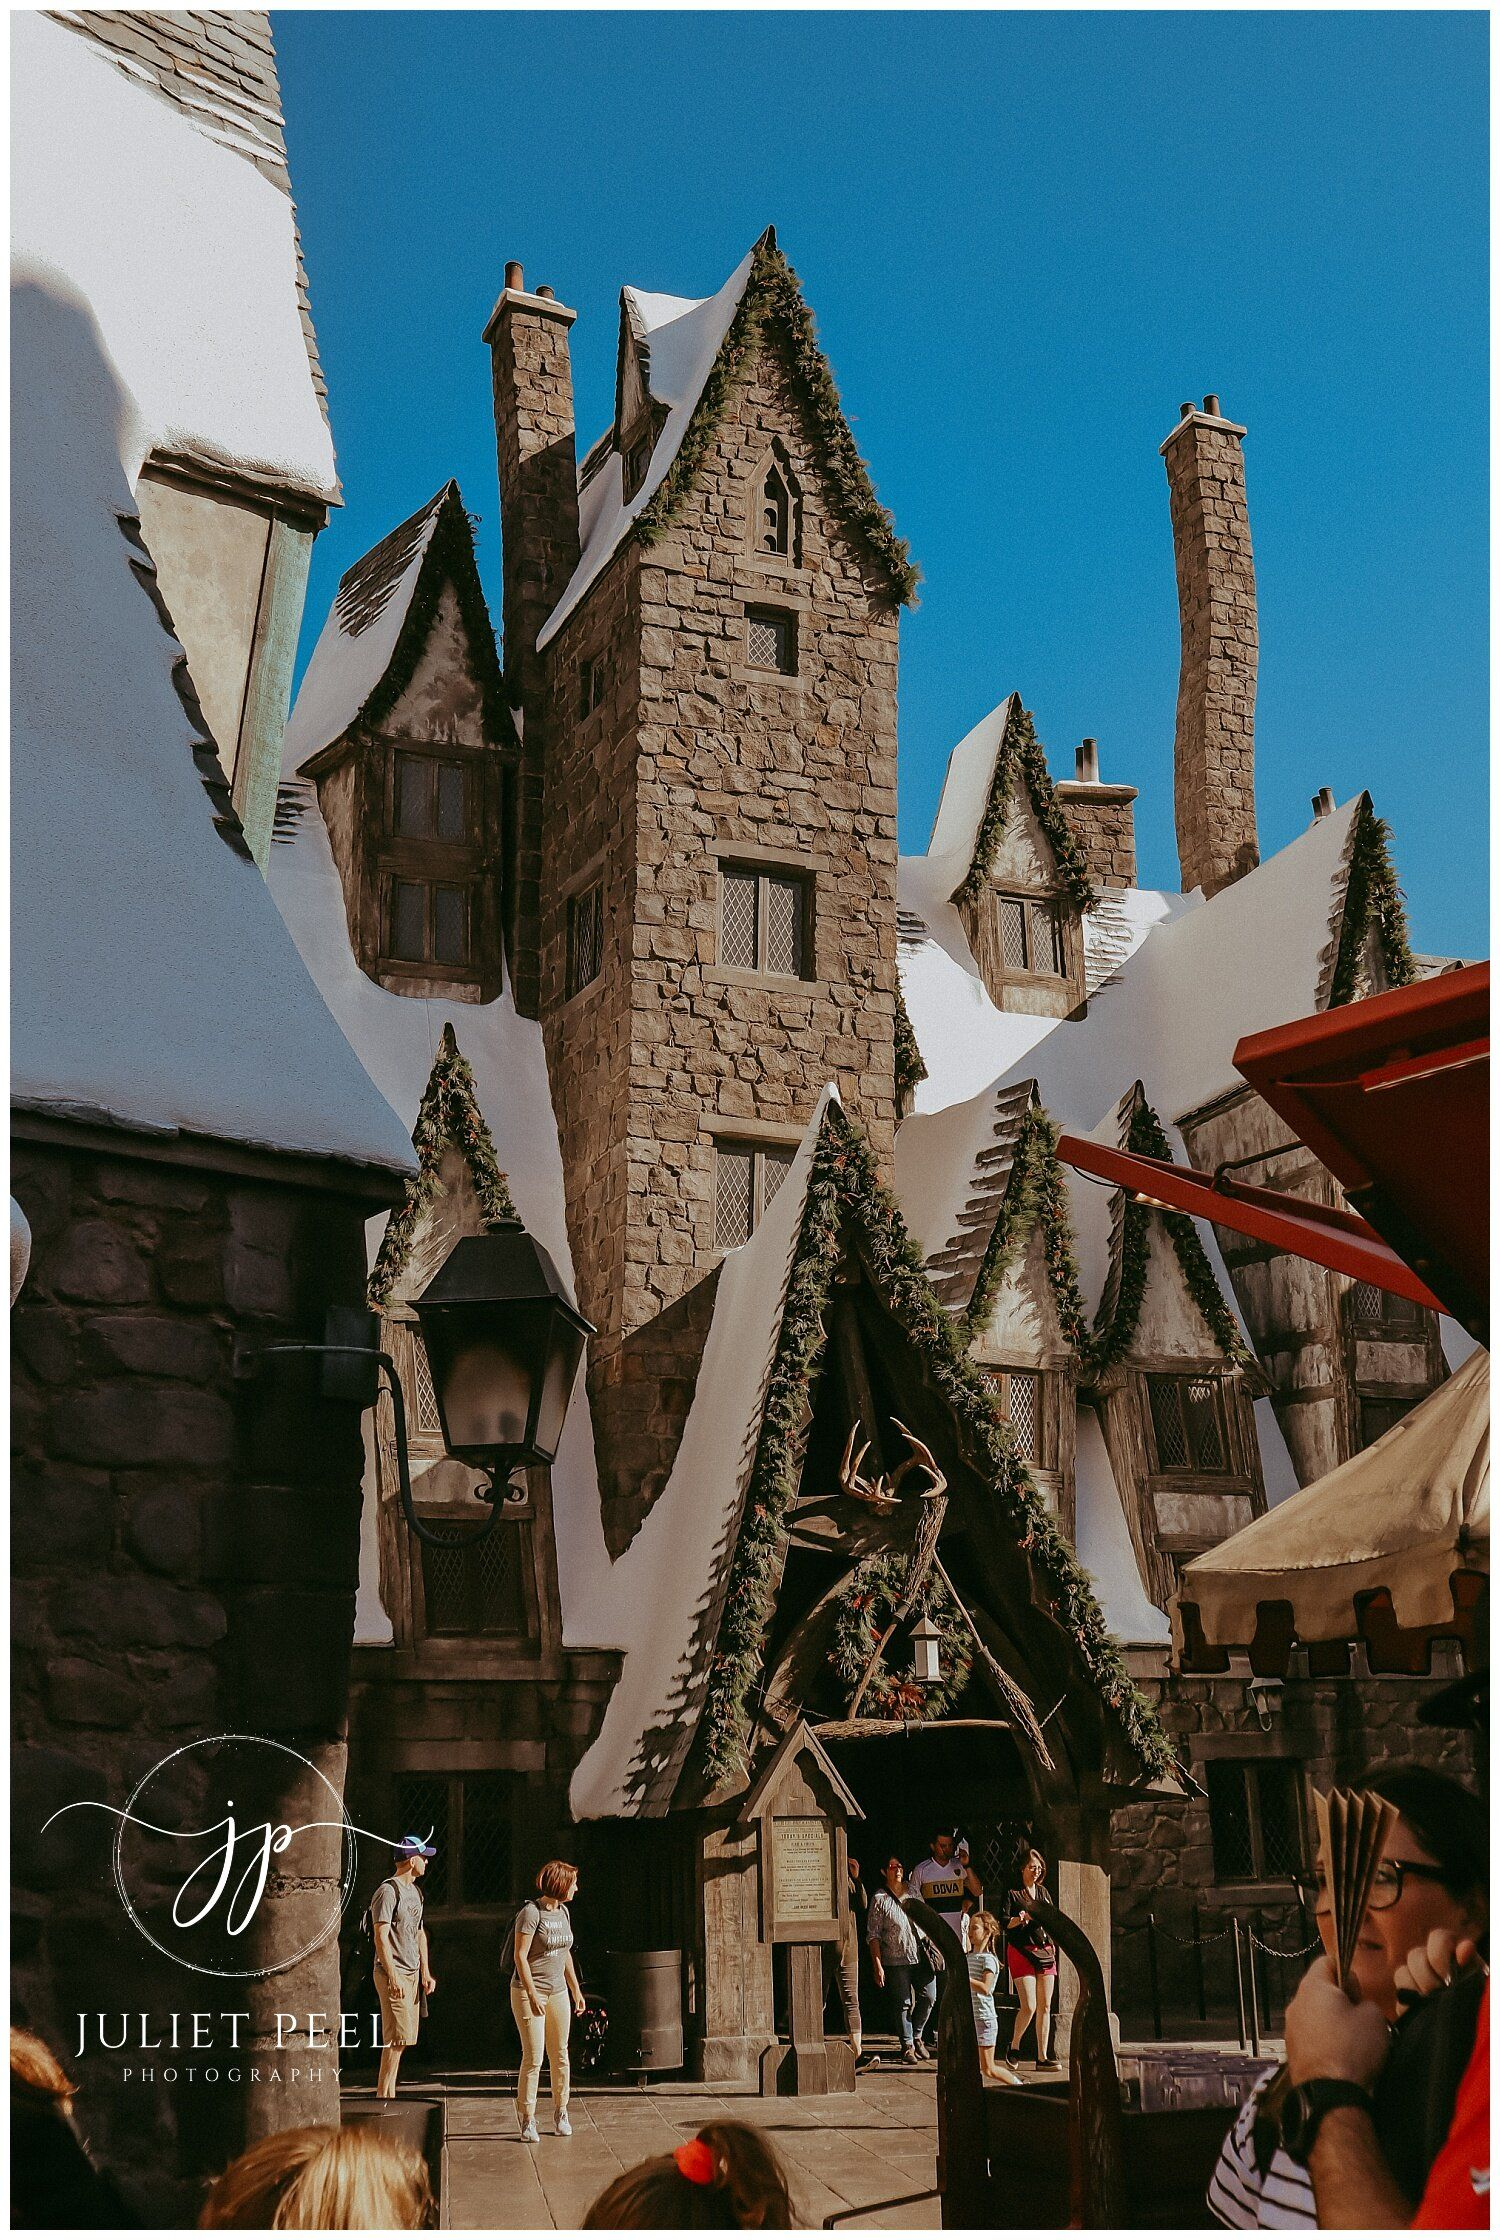 Hogsmeade And Hogwarts Castle At The Wizarding World Of Harry Potter Universal Studios Hollywood Juliet Peel Photography Harry Potter Universal Studios Harry Potter Universal Studios Hollywood Wizarding World Of Harry Potter